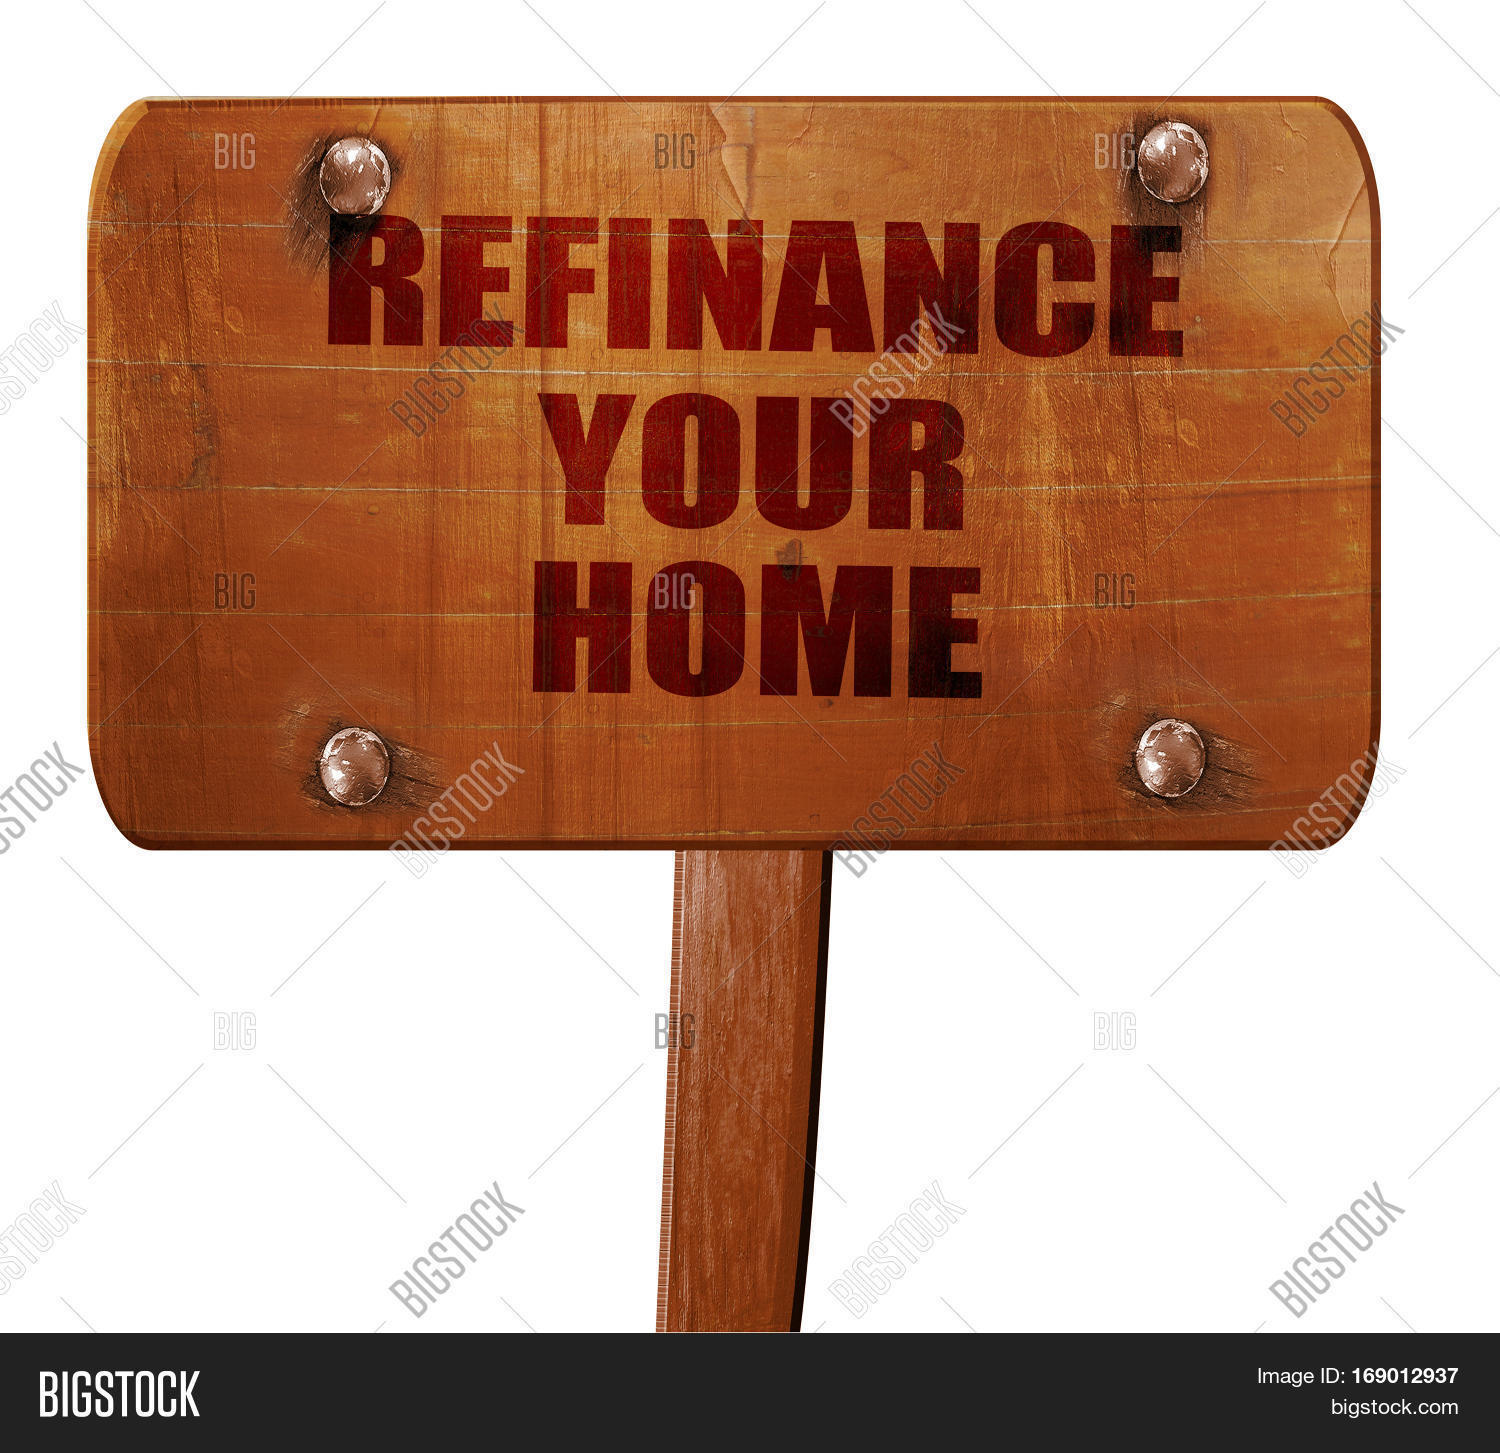 Refinance Your Home. Image & Photo (Free Trial)   Bigstock